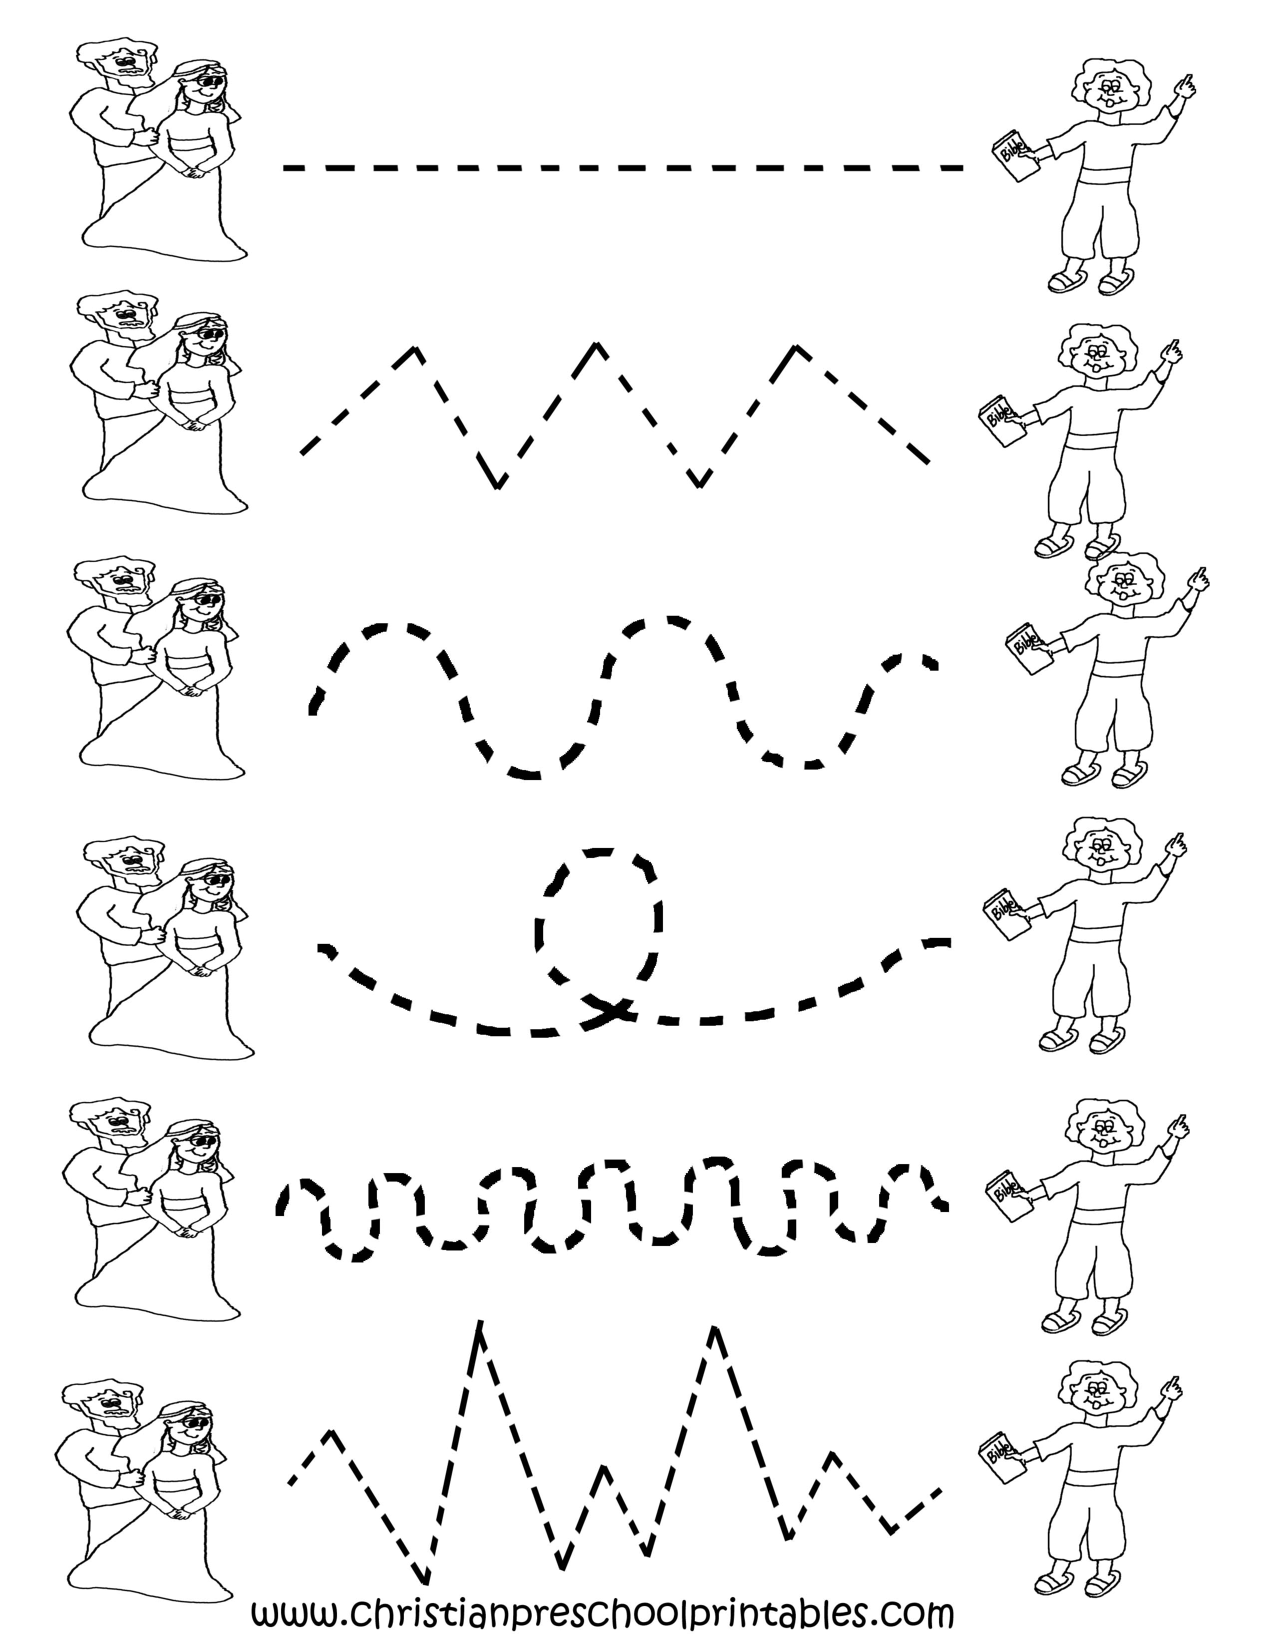 Image detail for -Preschool Tracing Worksheets | Preschool ideas ...